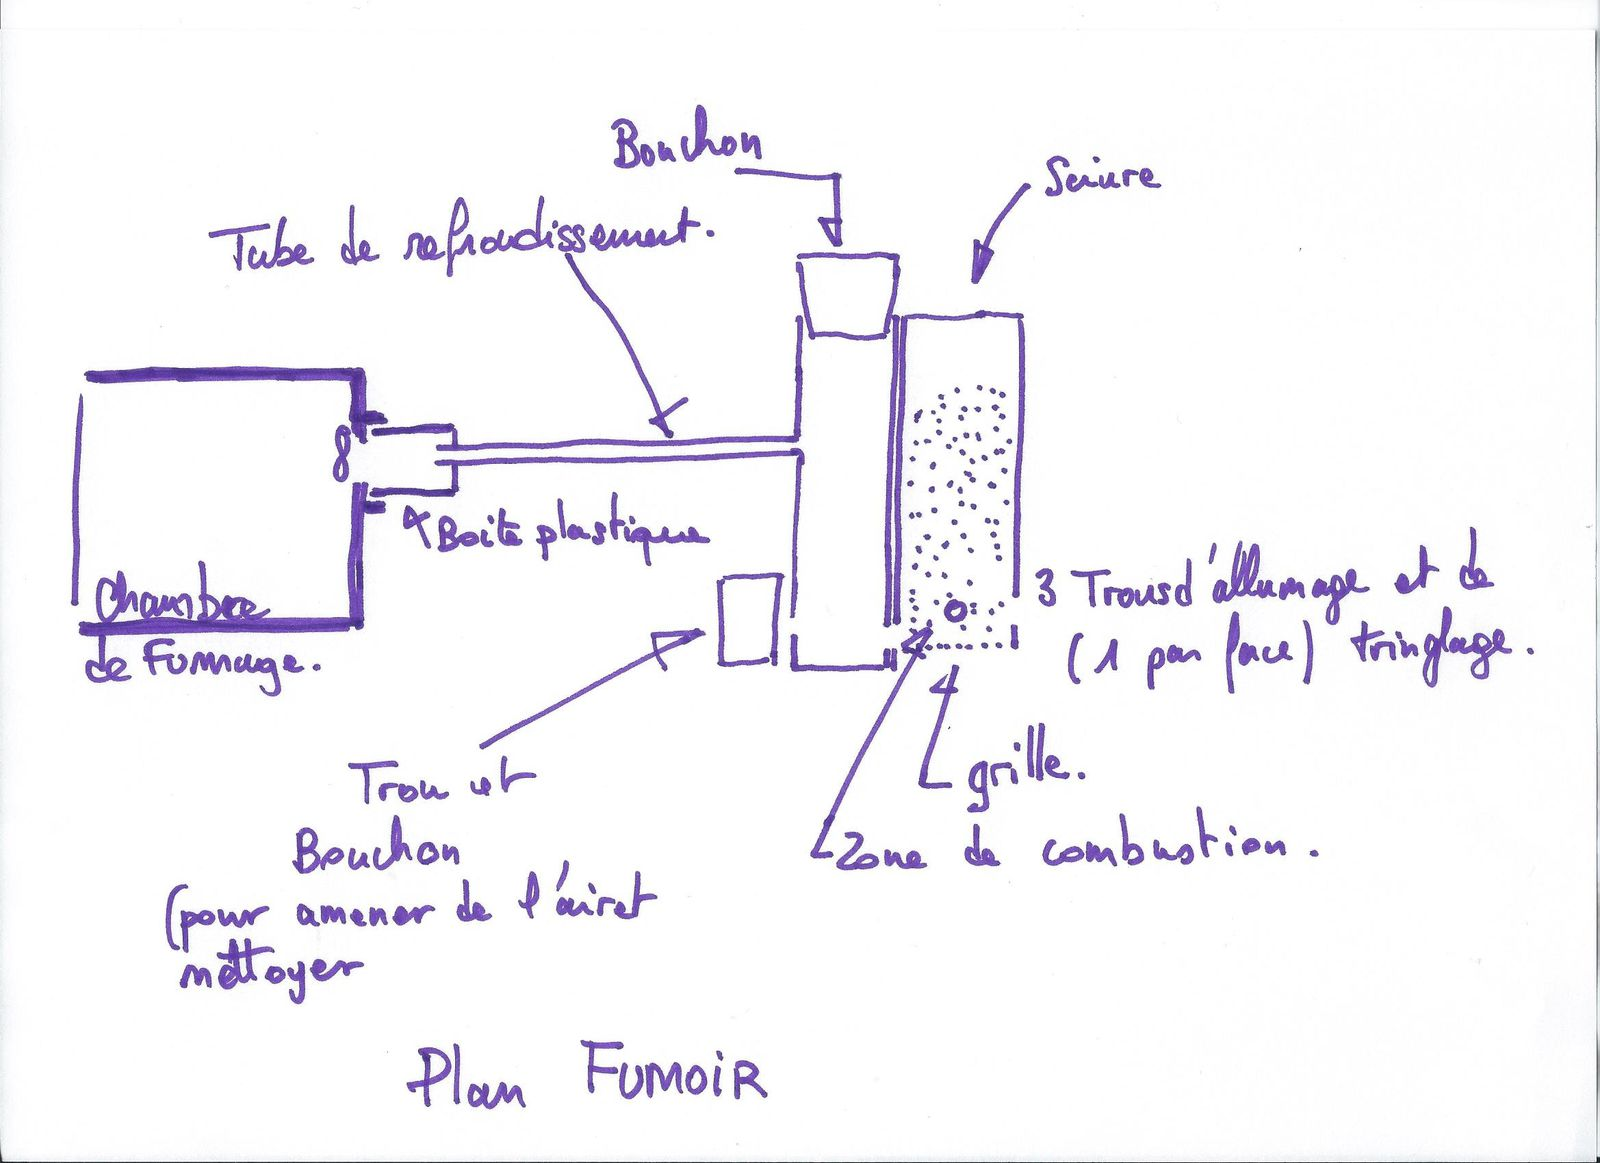 Construction d 39 un fumoir et production de fum e un four for Fabrication d un four a pain artisanal